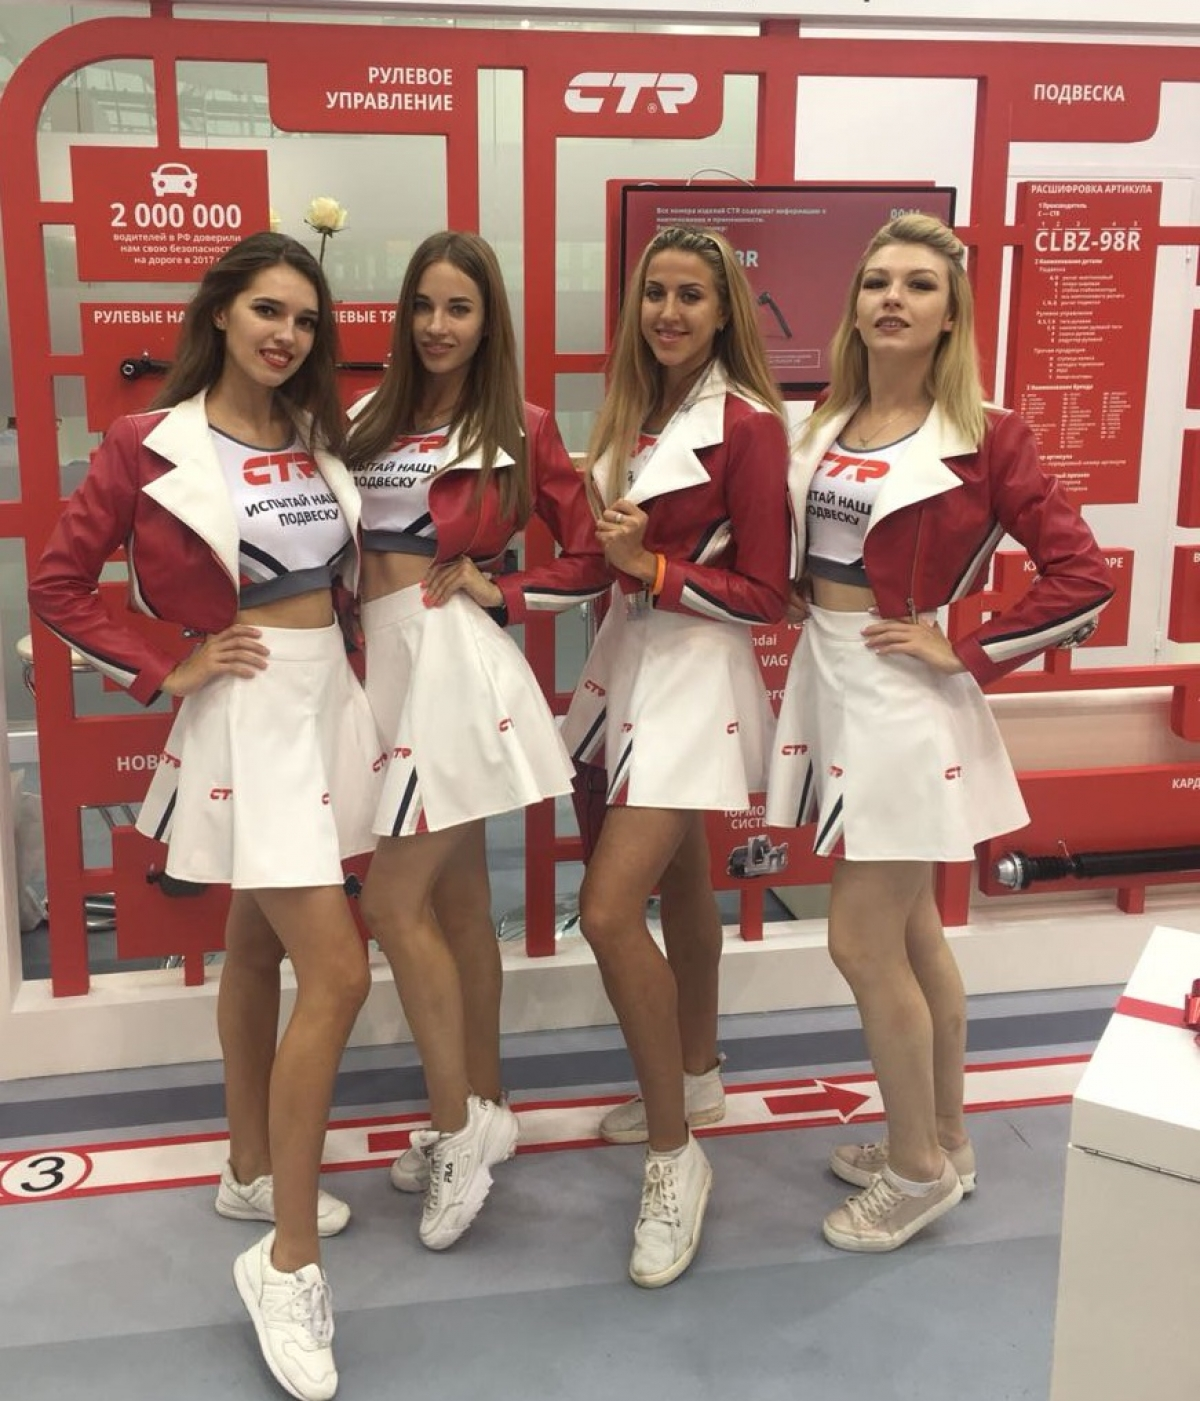 Mims Automechanika-2018. Хостес